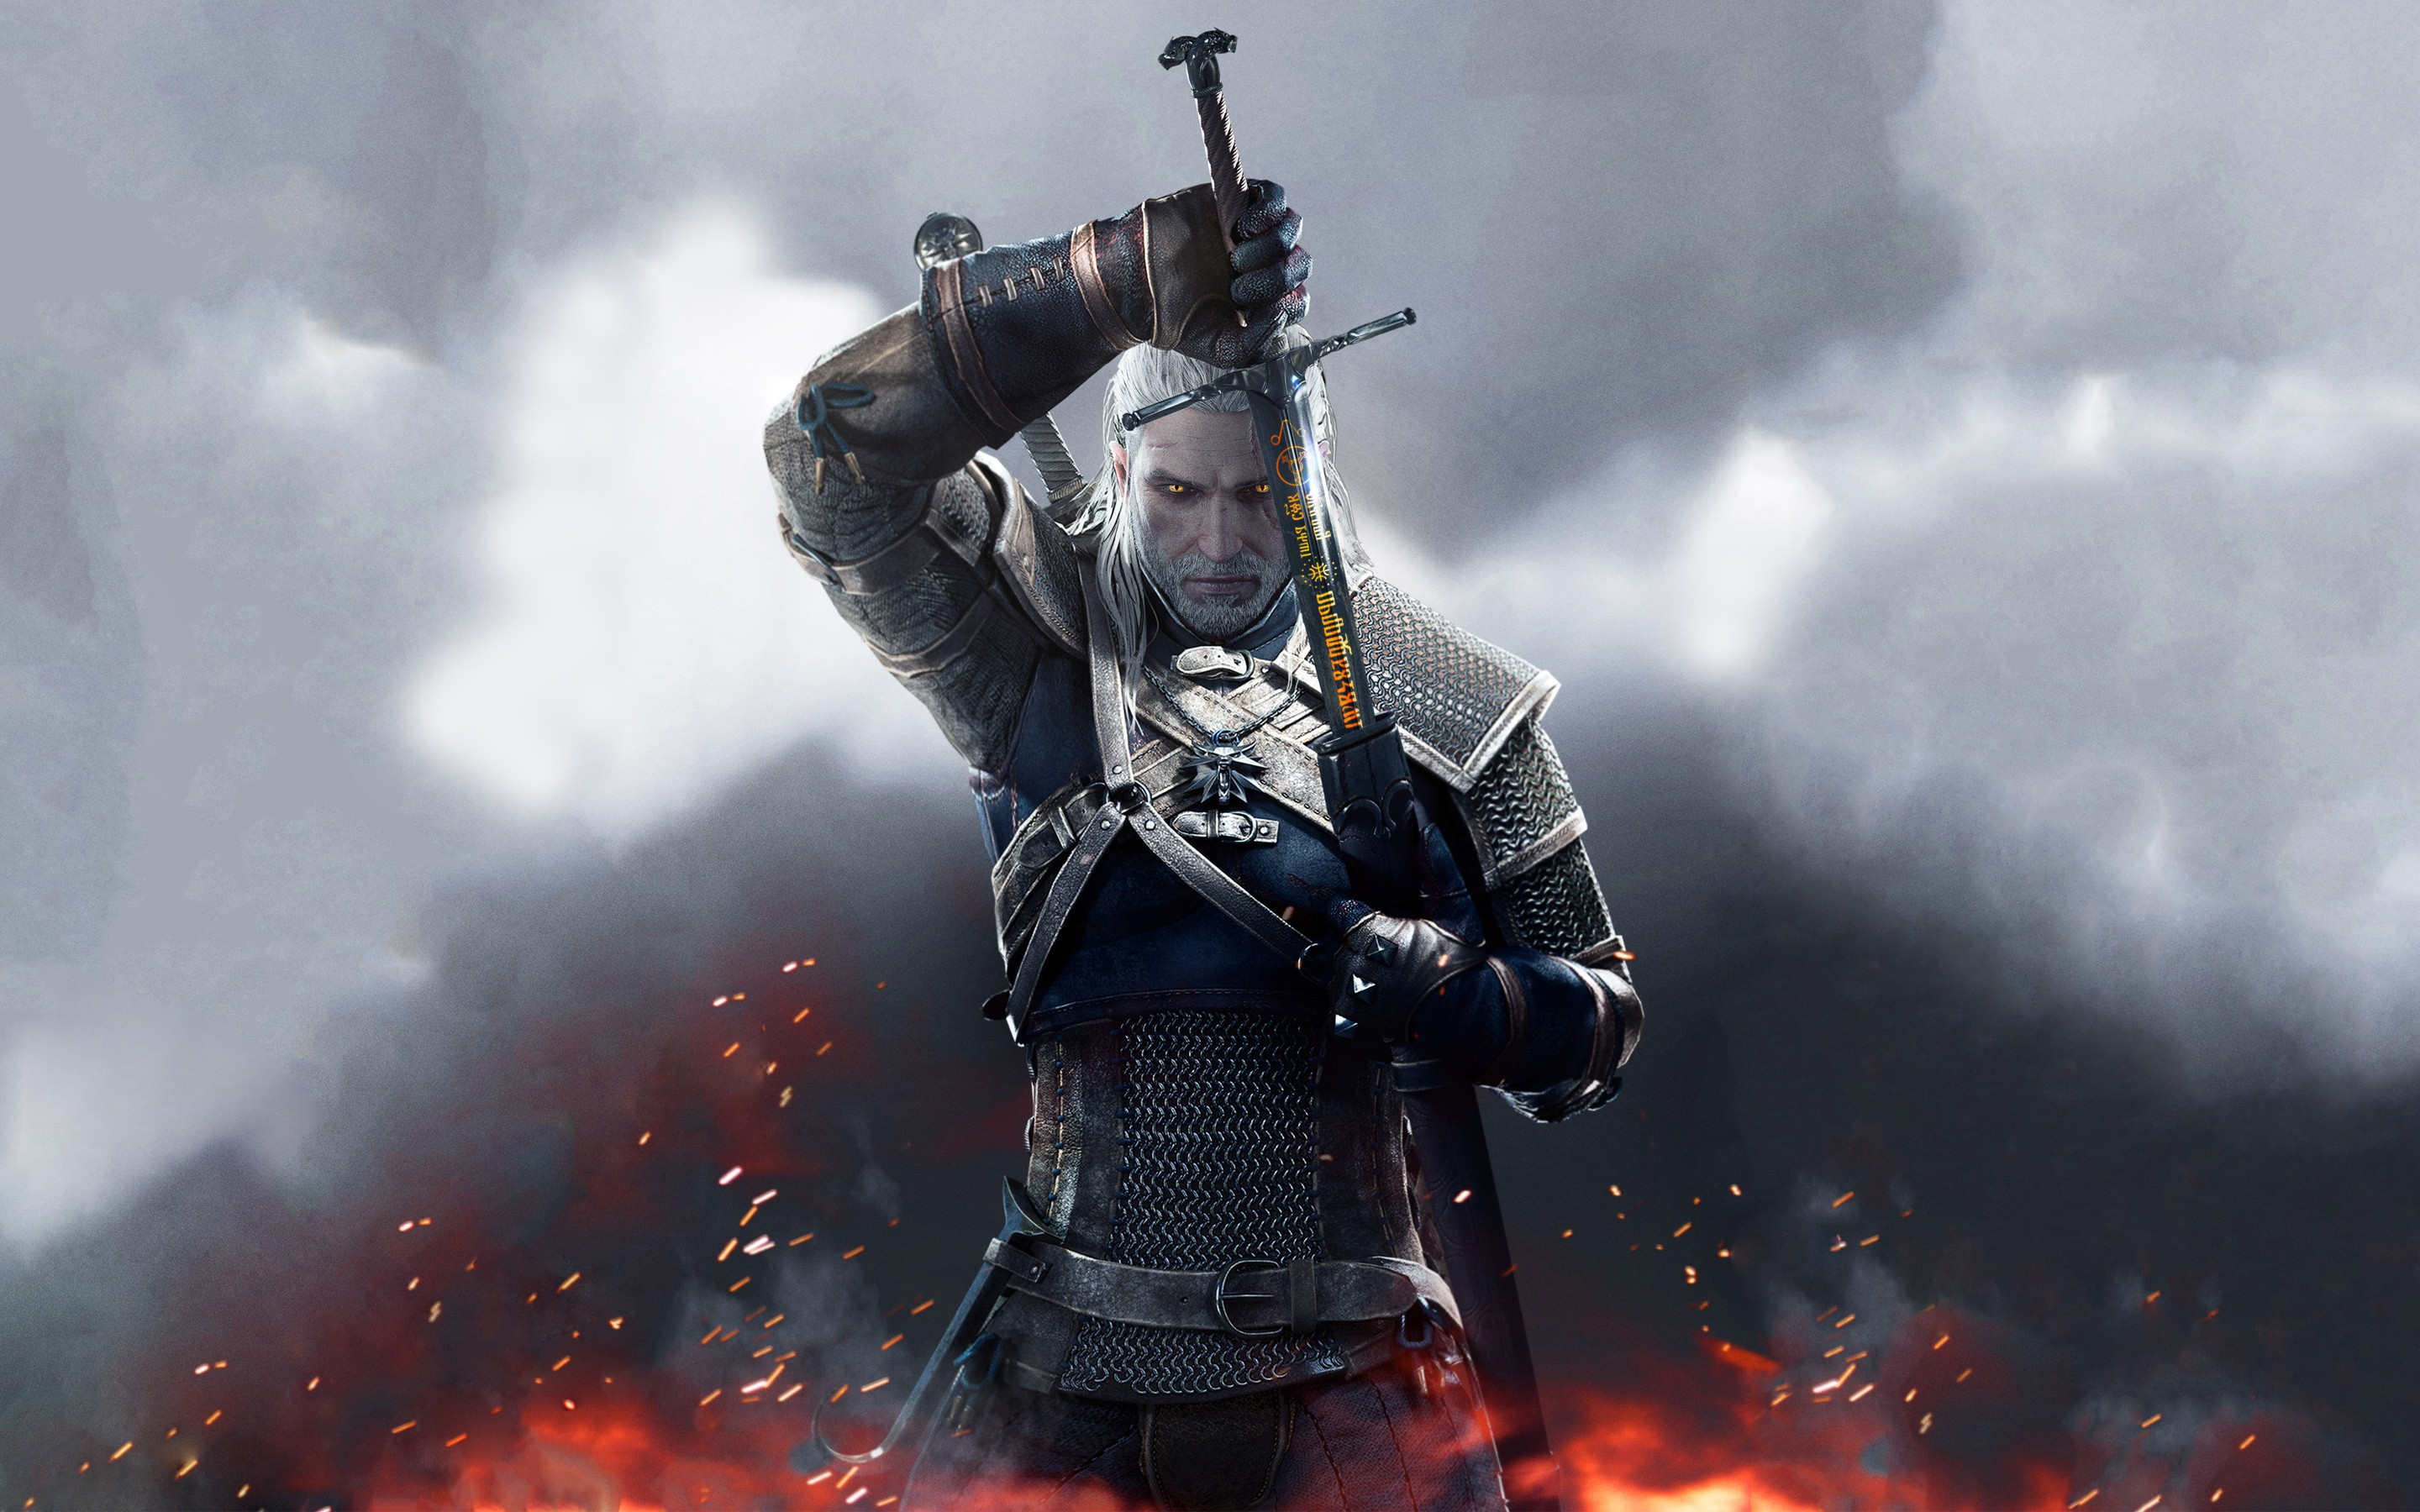 2880x1800 The Witcher 3 Wild Hunt Sword of Destiny Wallpapers | HD Wallpapers